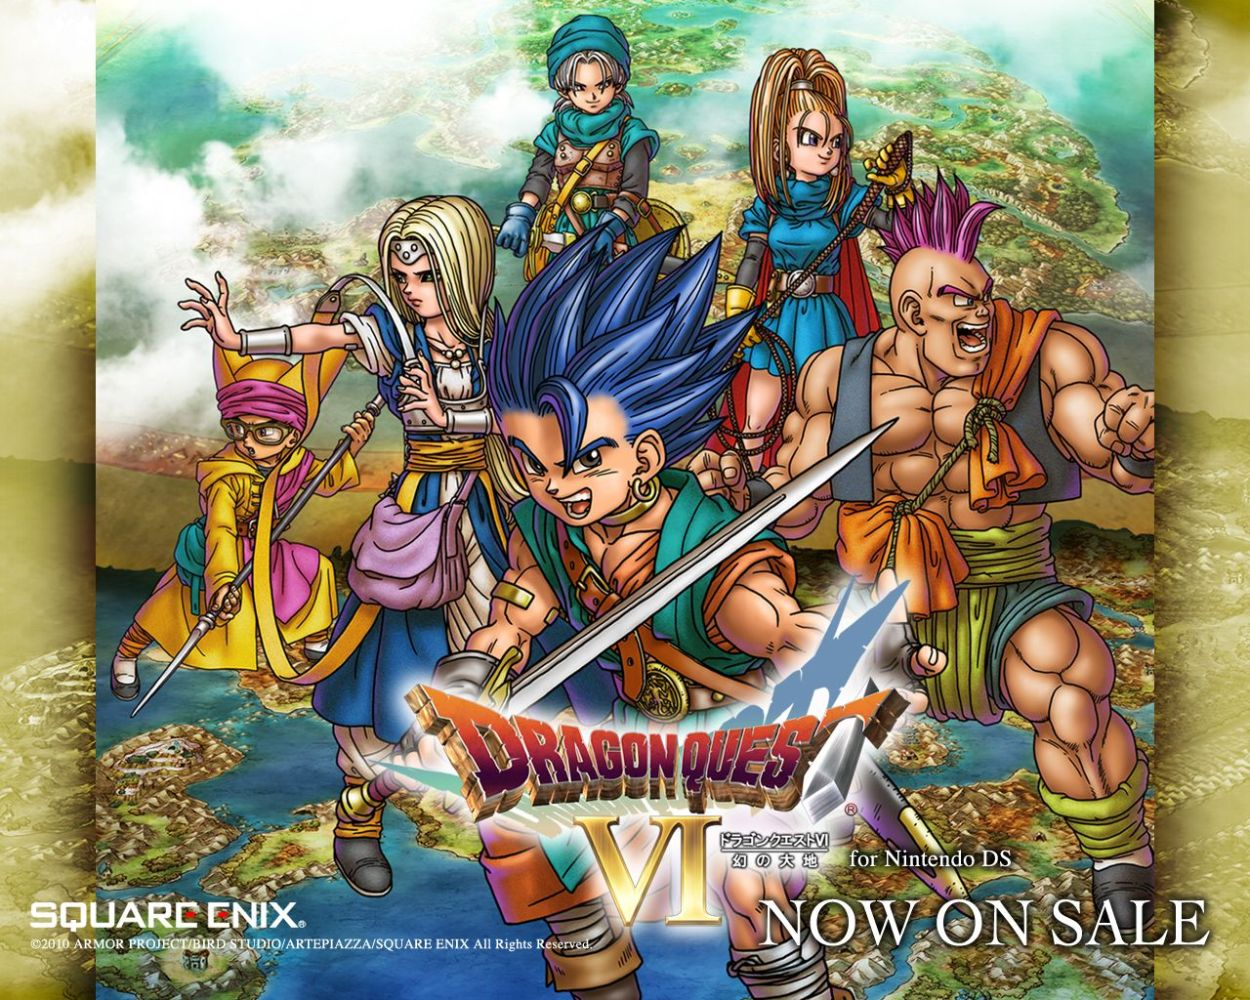 dragonquest_vi_03_1280